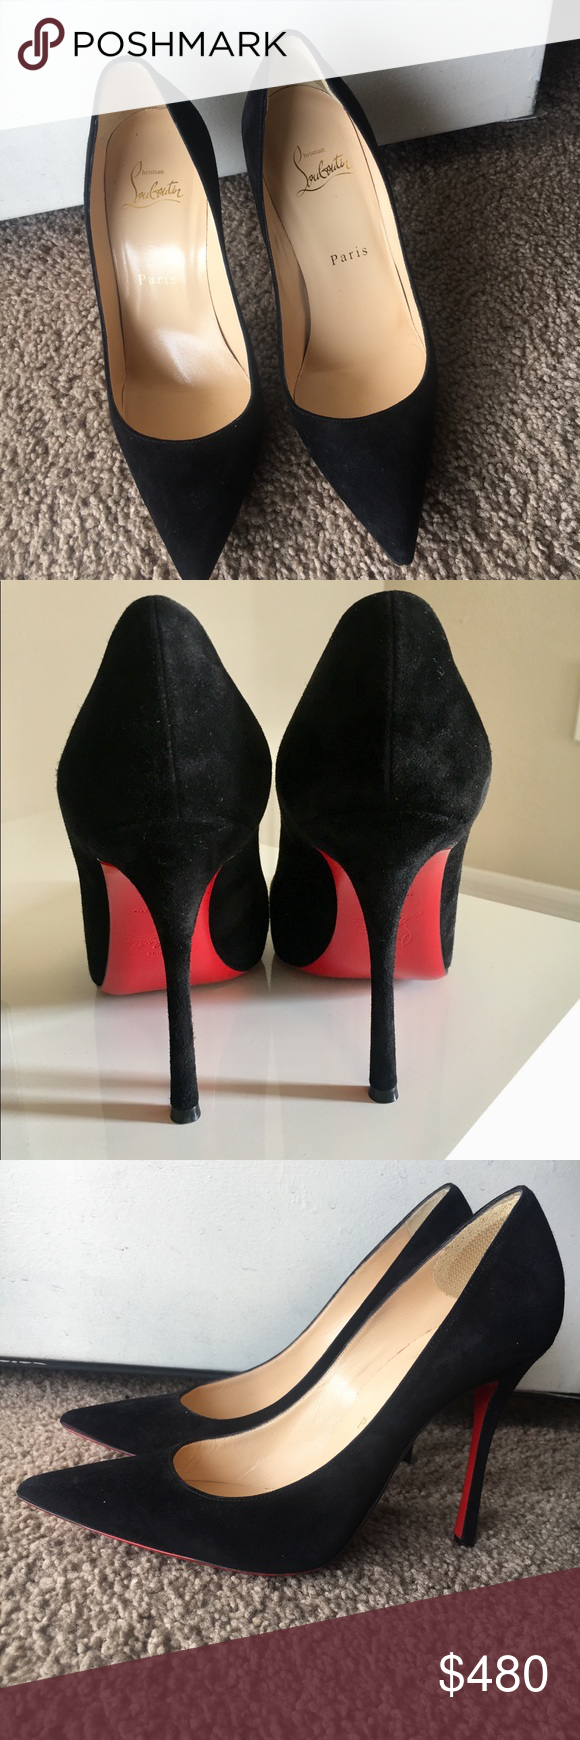 4654552d3fa1 Christian Louboutin So Kate 120 mm Suede Pumps So Kate 120 mm - Black Suede  - Size 37 US 7 - Used a couple times - WITHOUT BOX or DUST BAG!